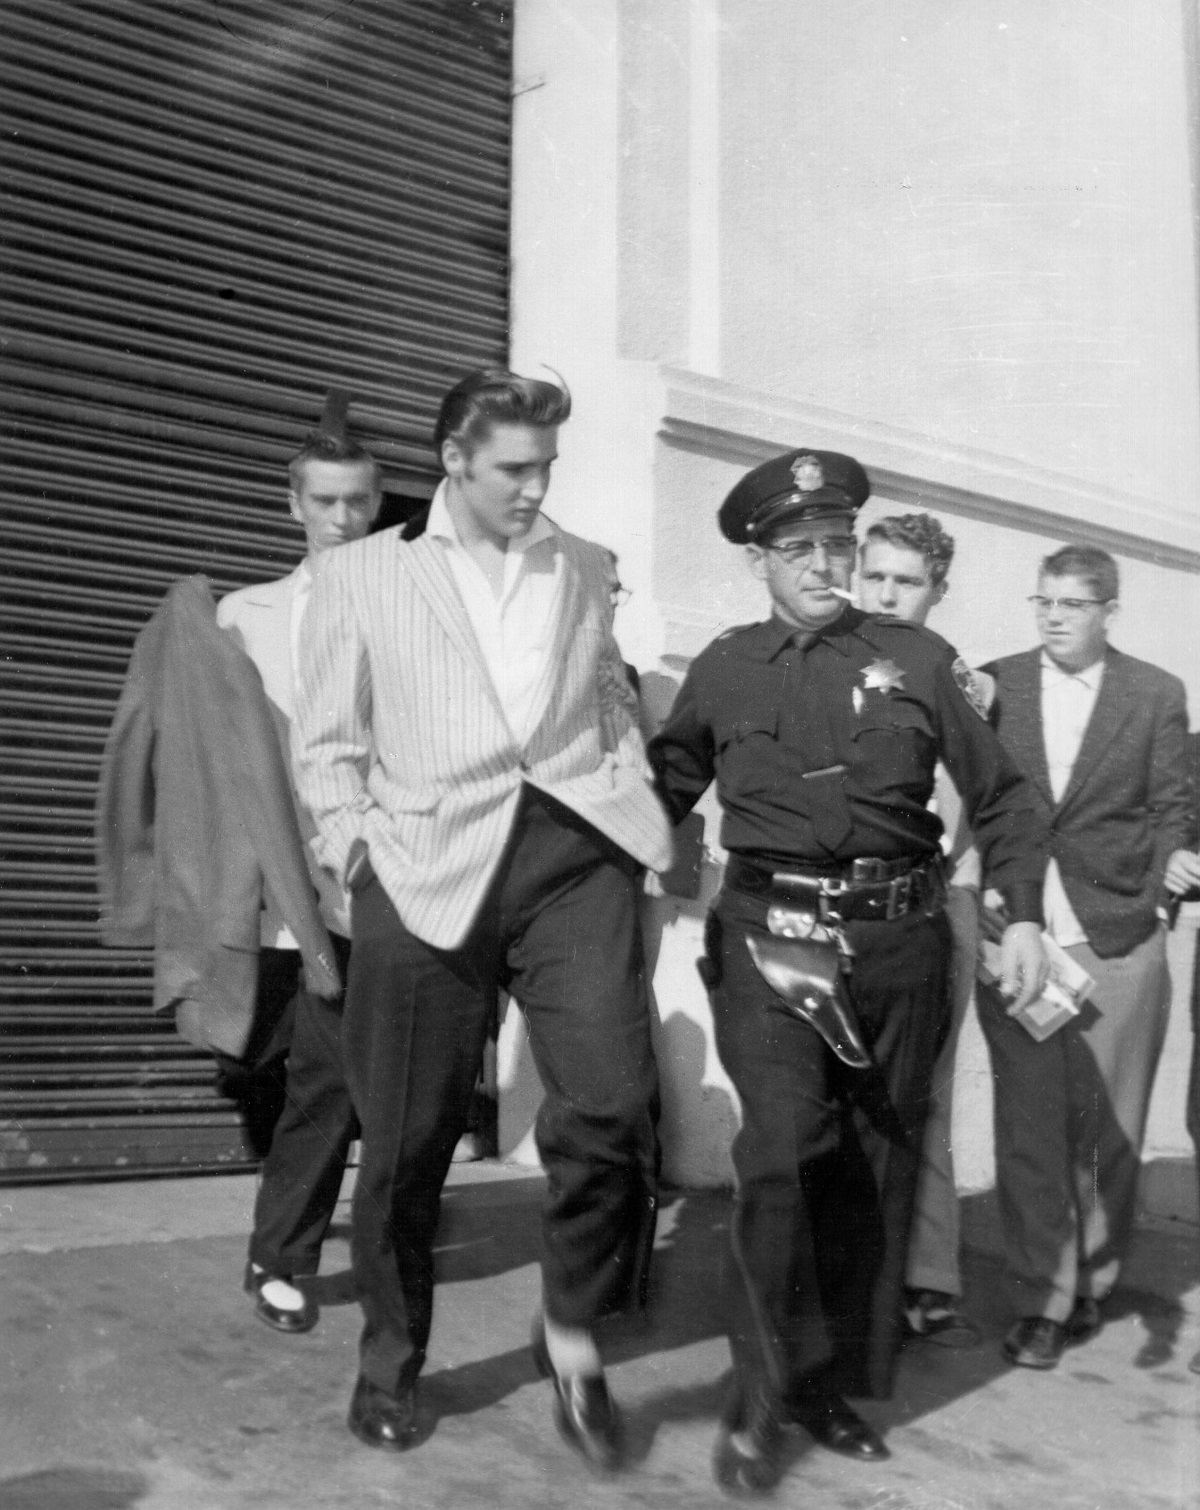 Elvis Presley with police and security in 1956